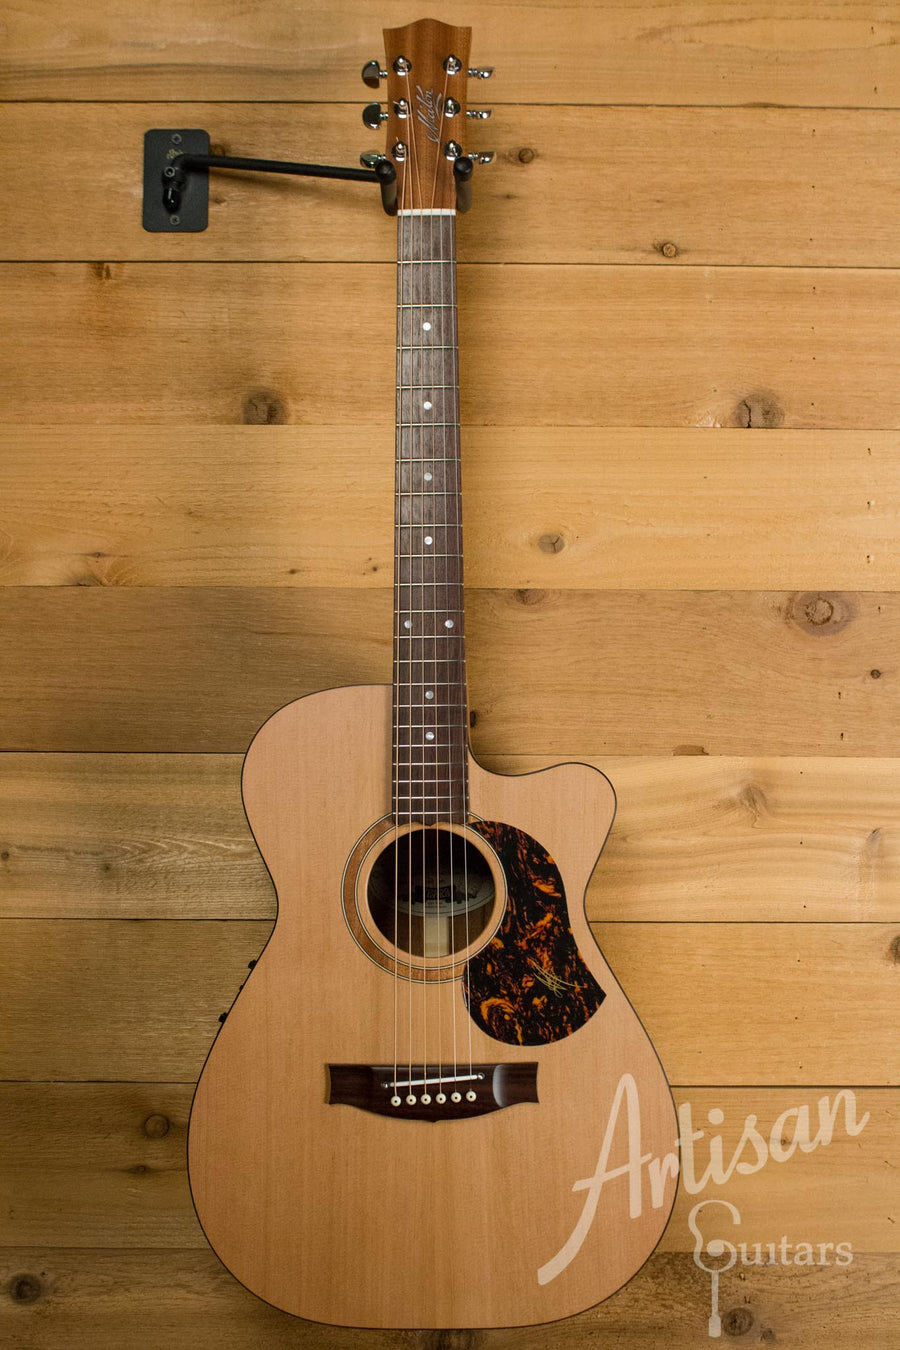 Maton SRS808C Guitar Western Red Cedar and Solid Blackwood Cutaway ID-10547 - Artisan Guitars